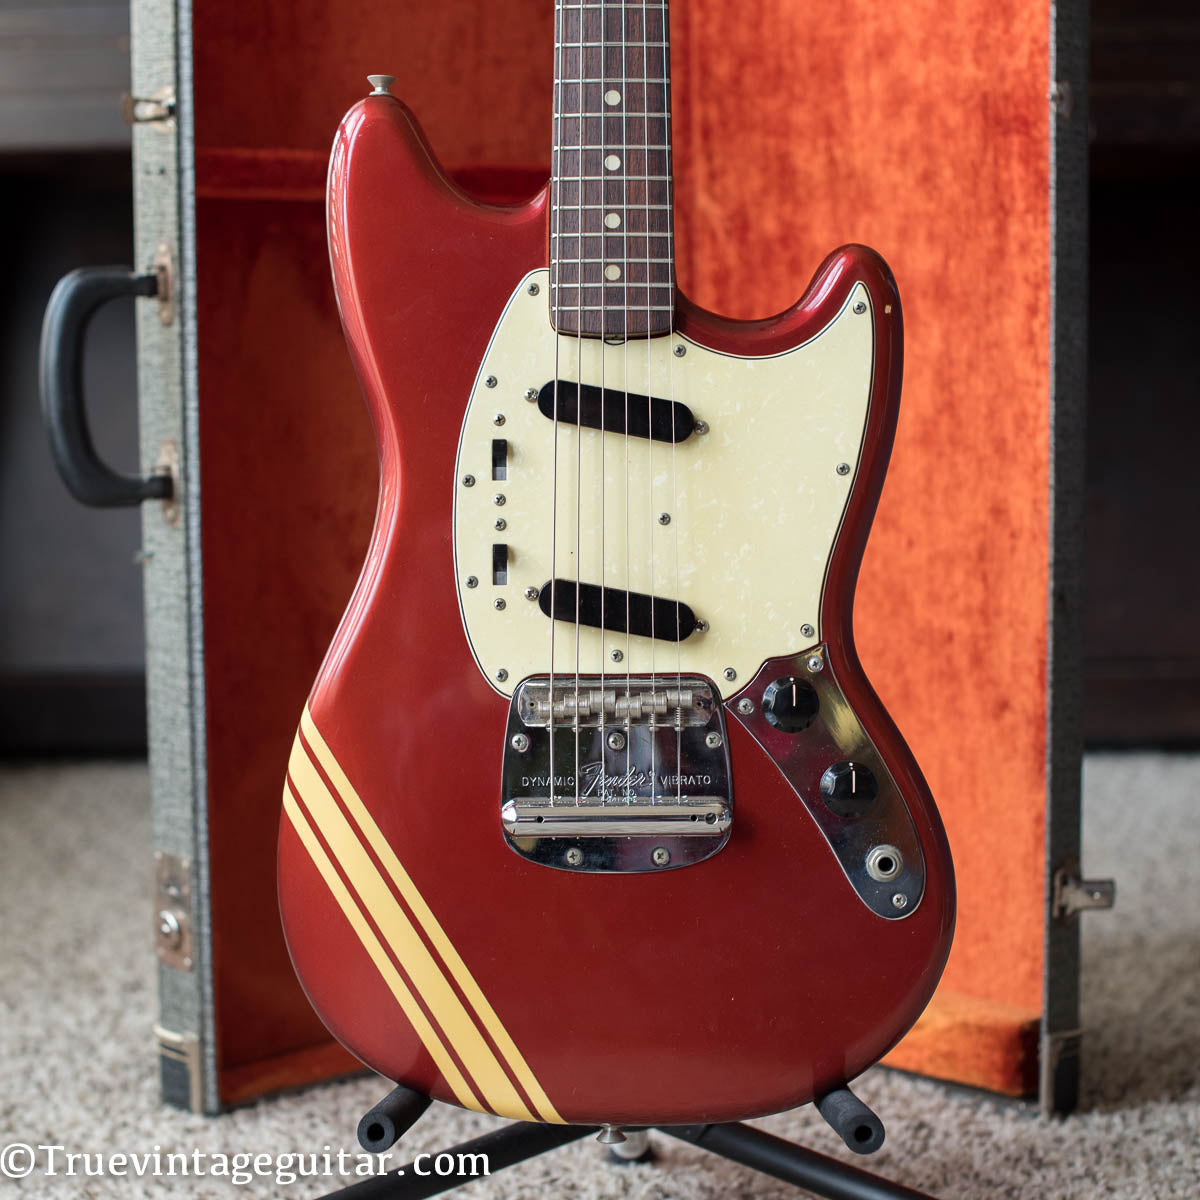 Vintage 1970 Fender Mustang Competition Red electric guitar